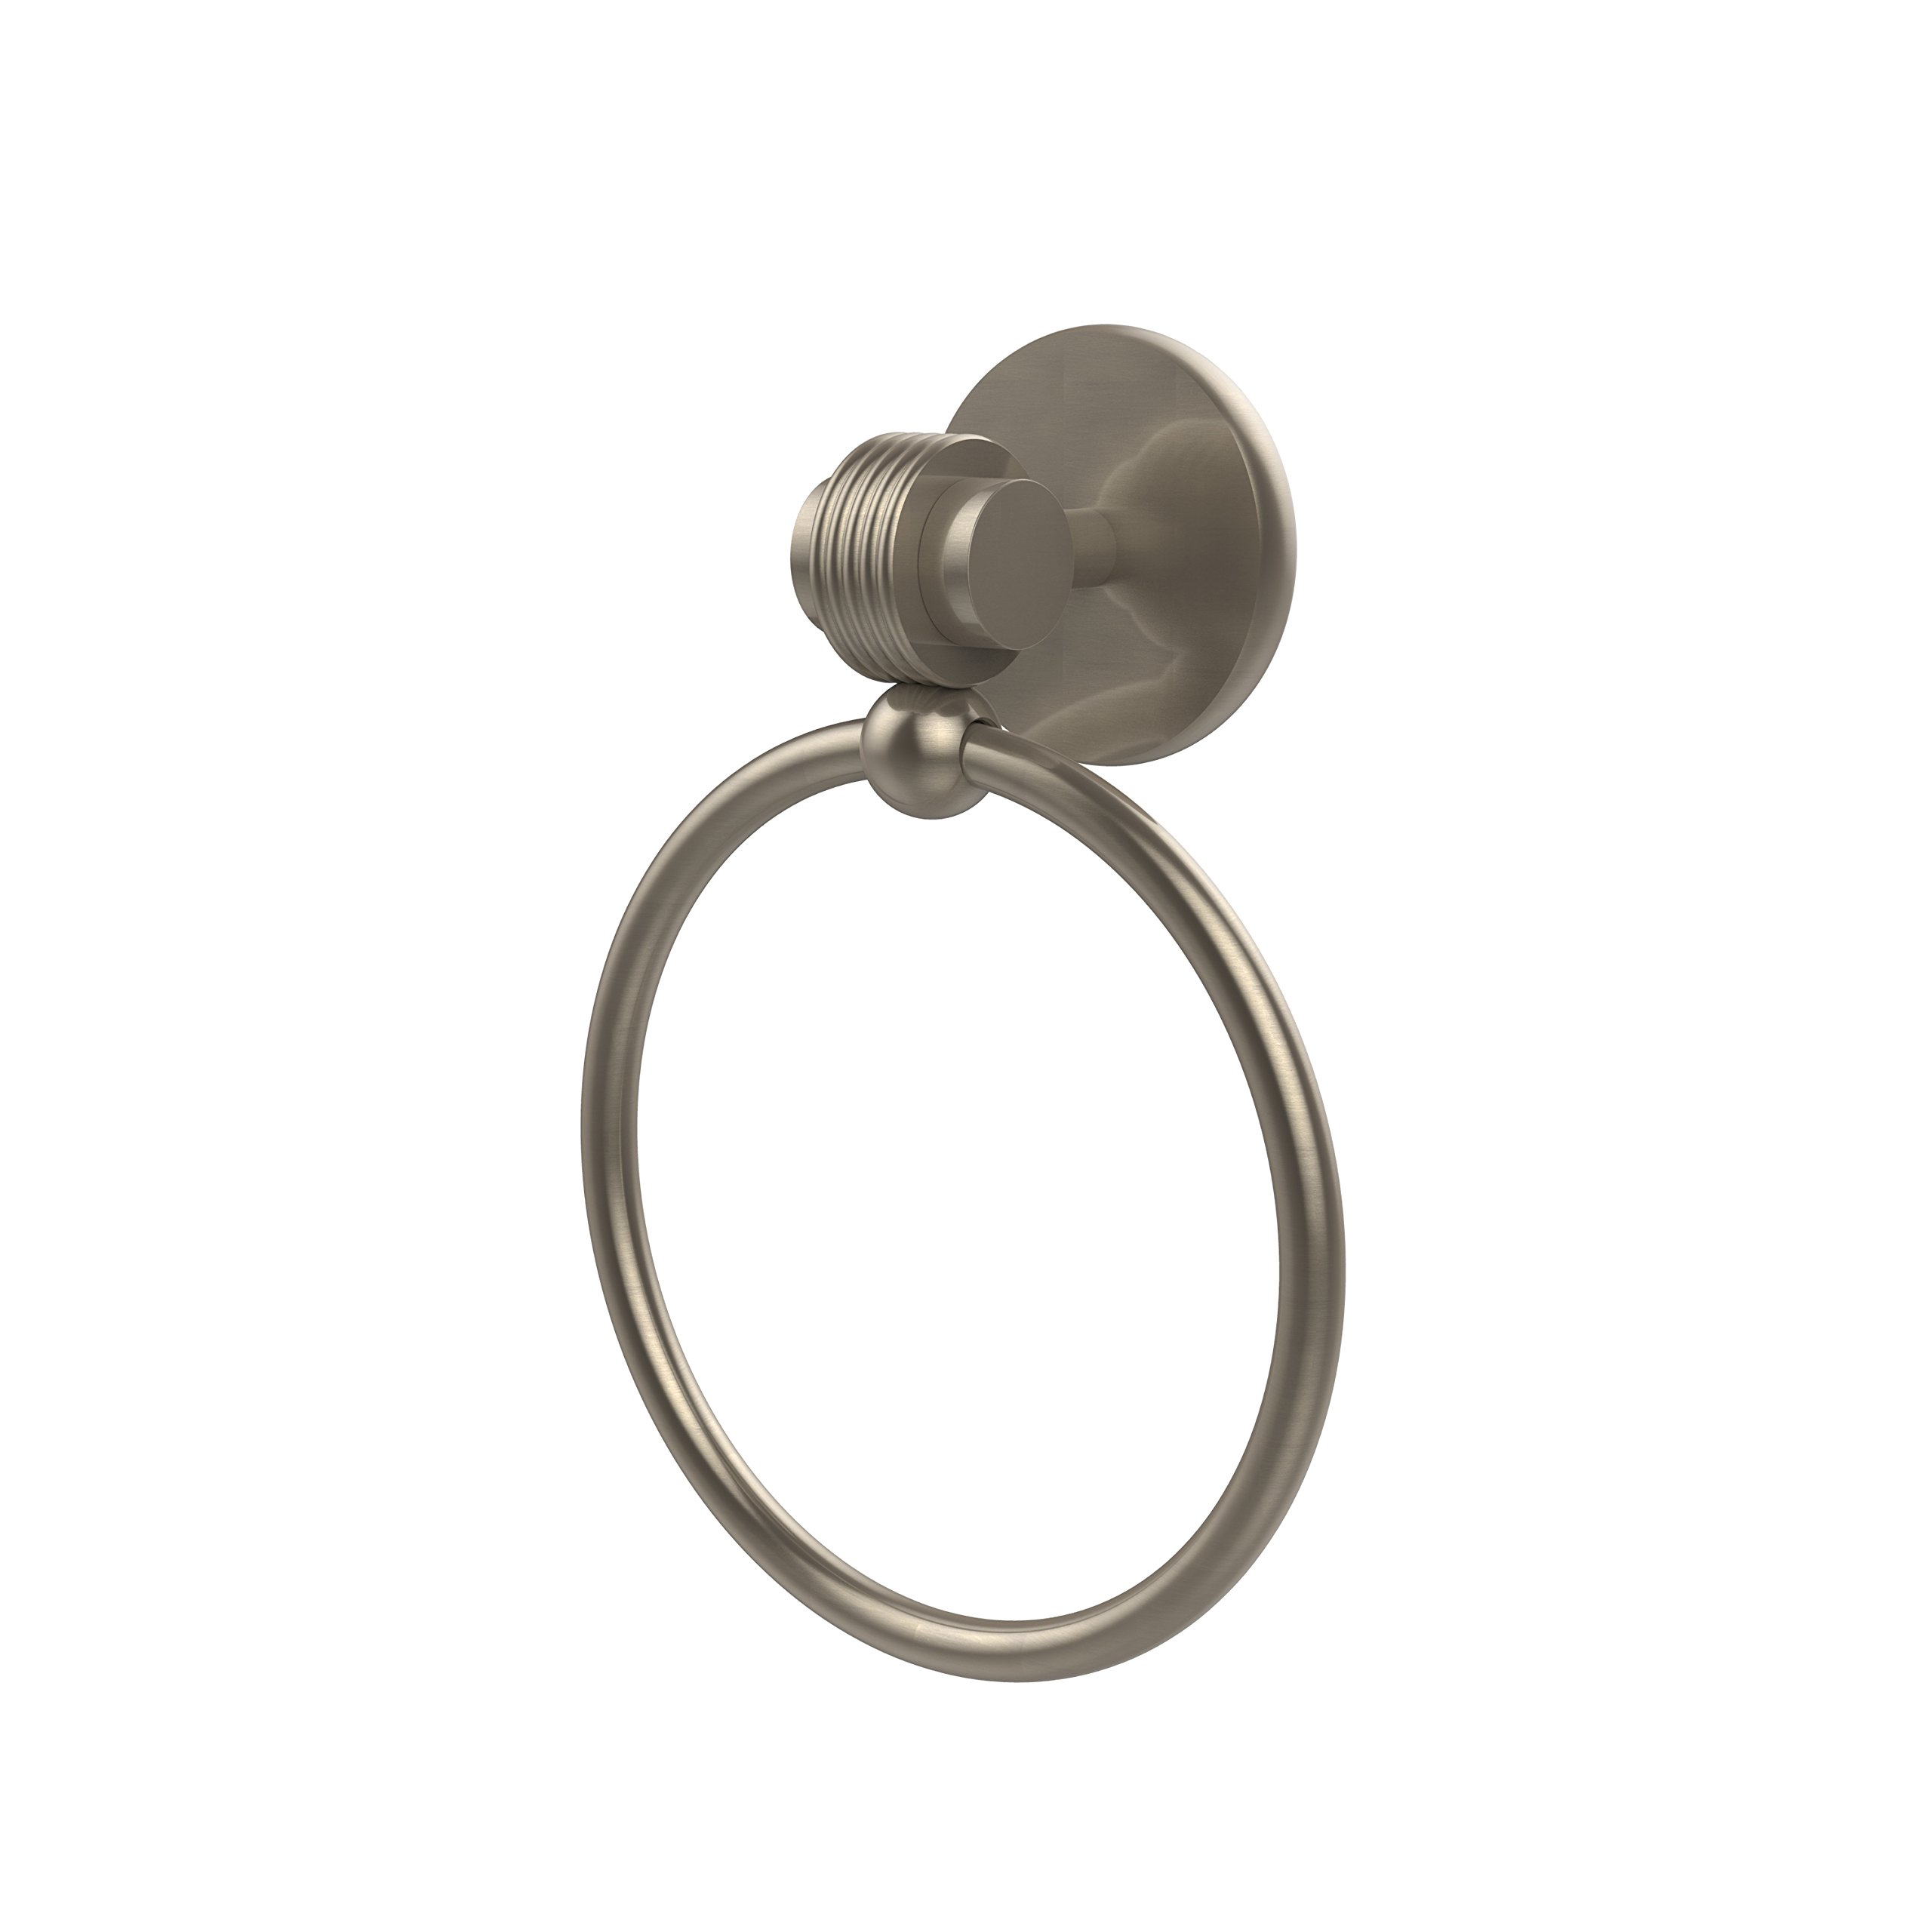 Allied Brass 7216G-PEW Single Towel Ring, Antique Pewter